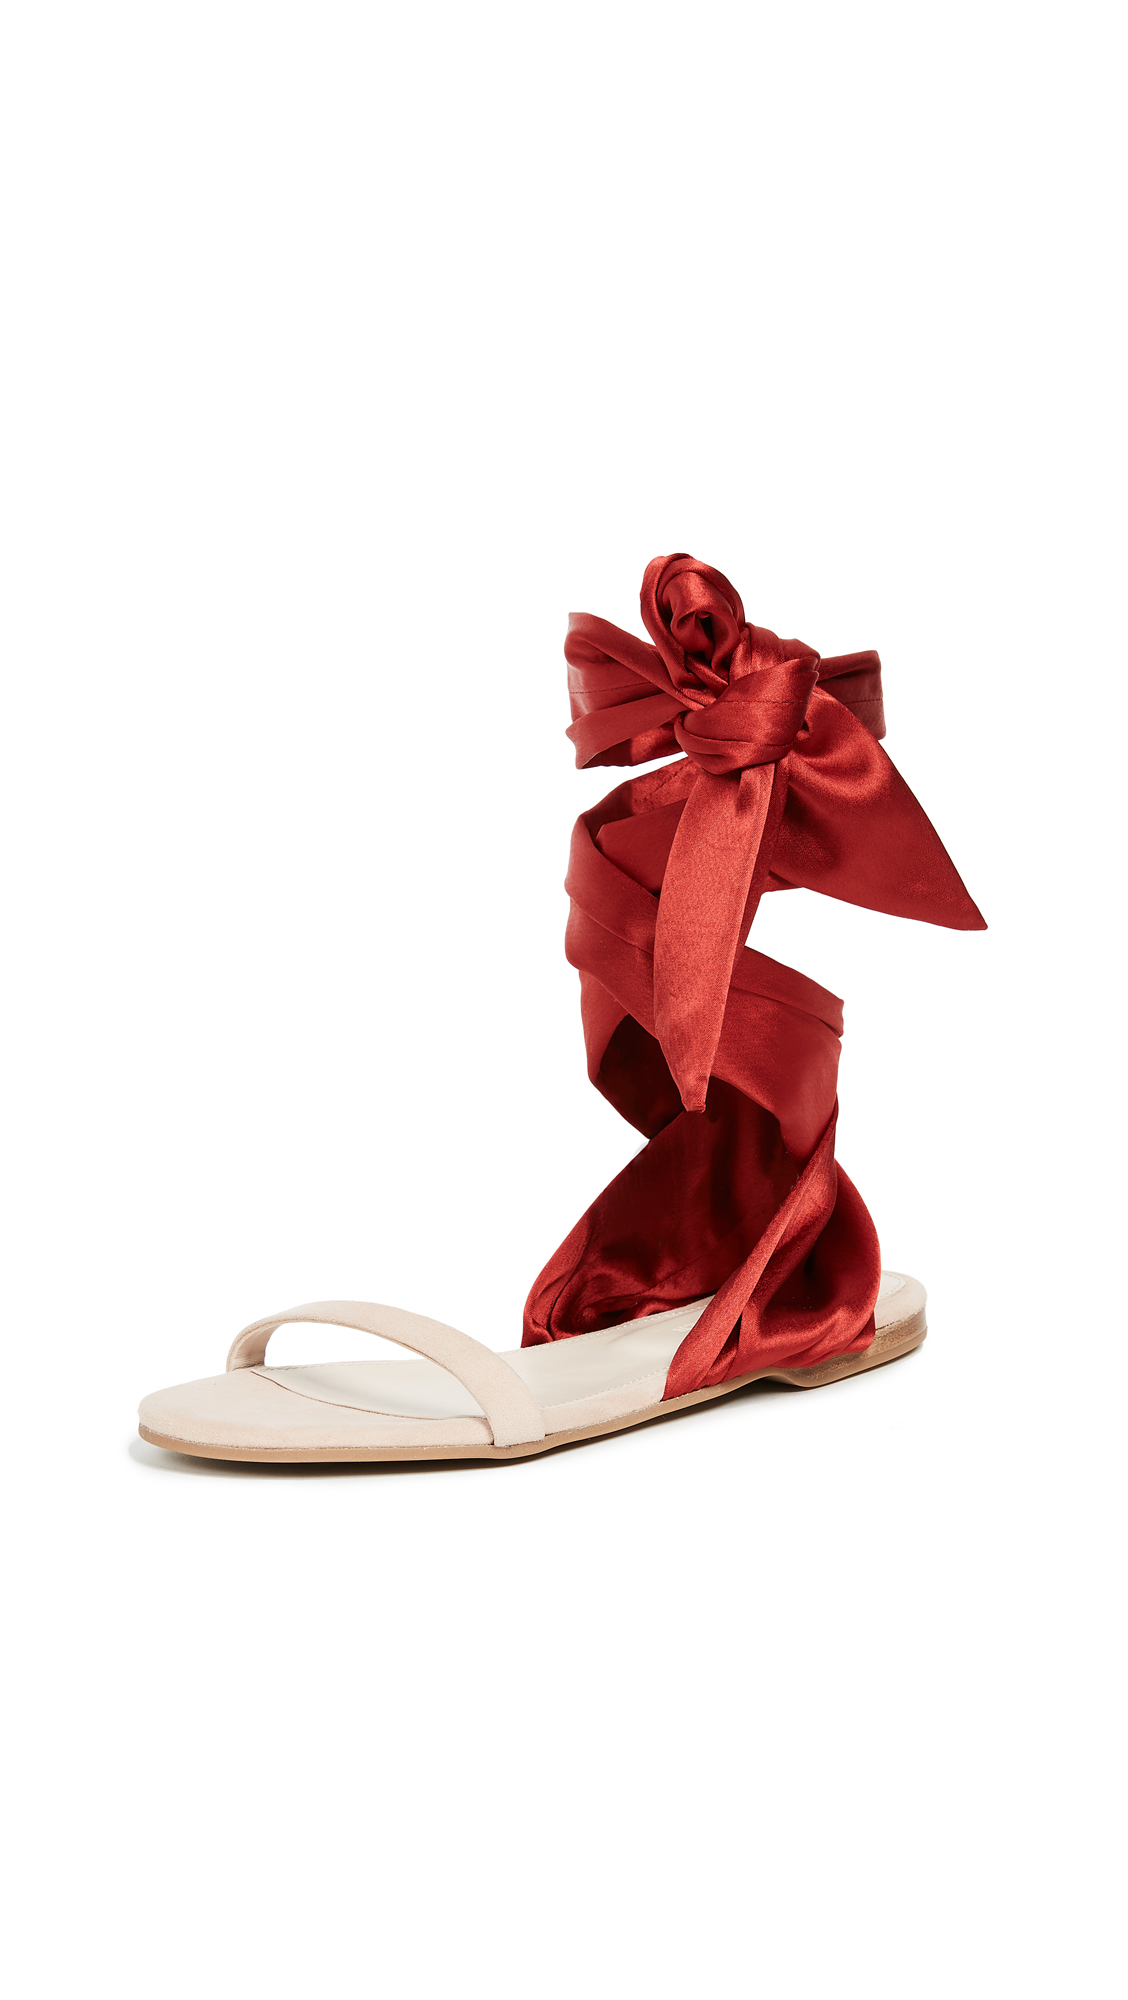 Cedric Charlier Wrap Sandals - Red